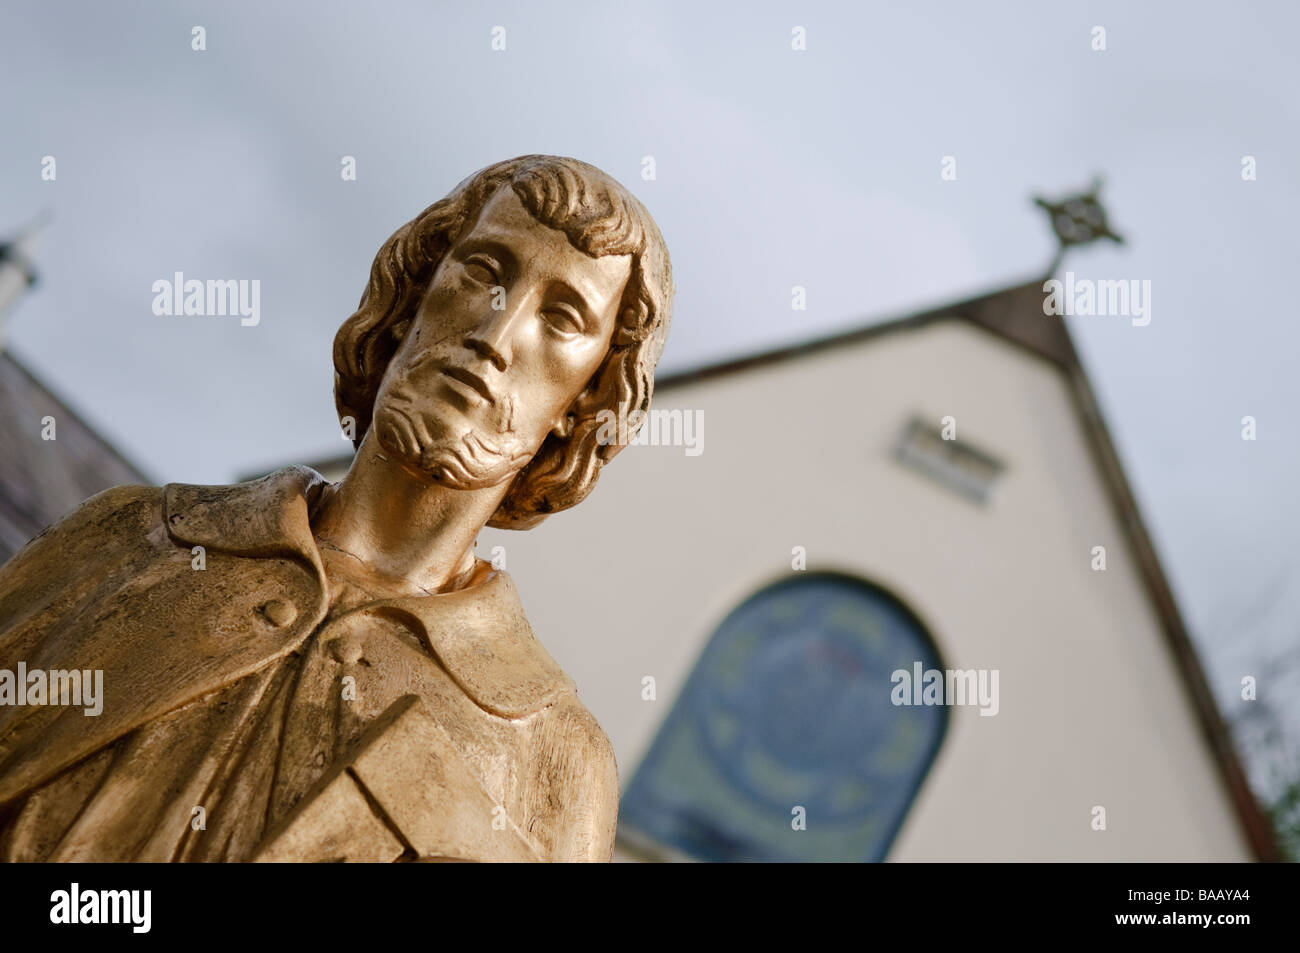 Guild/guilded/gold statue of Jesus outside a Catholic Church/Chapel - Stock Image